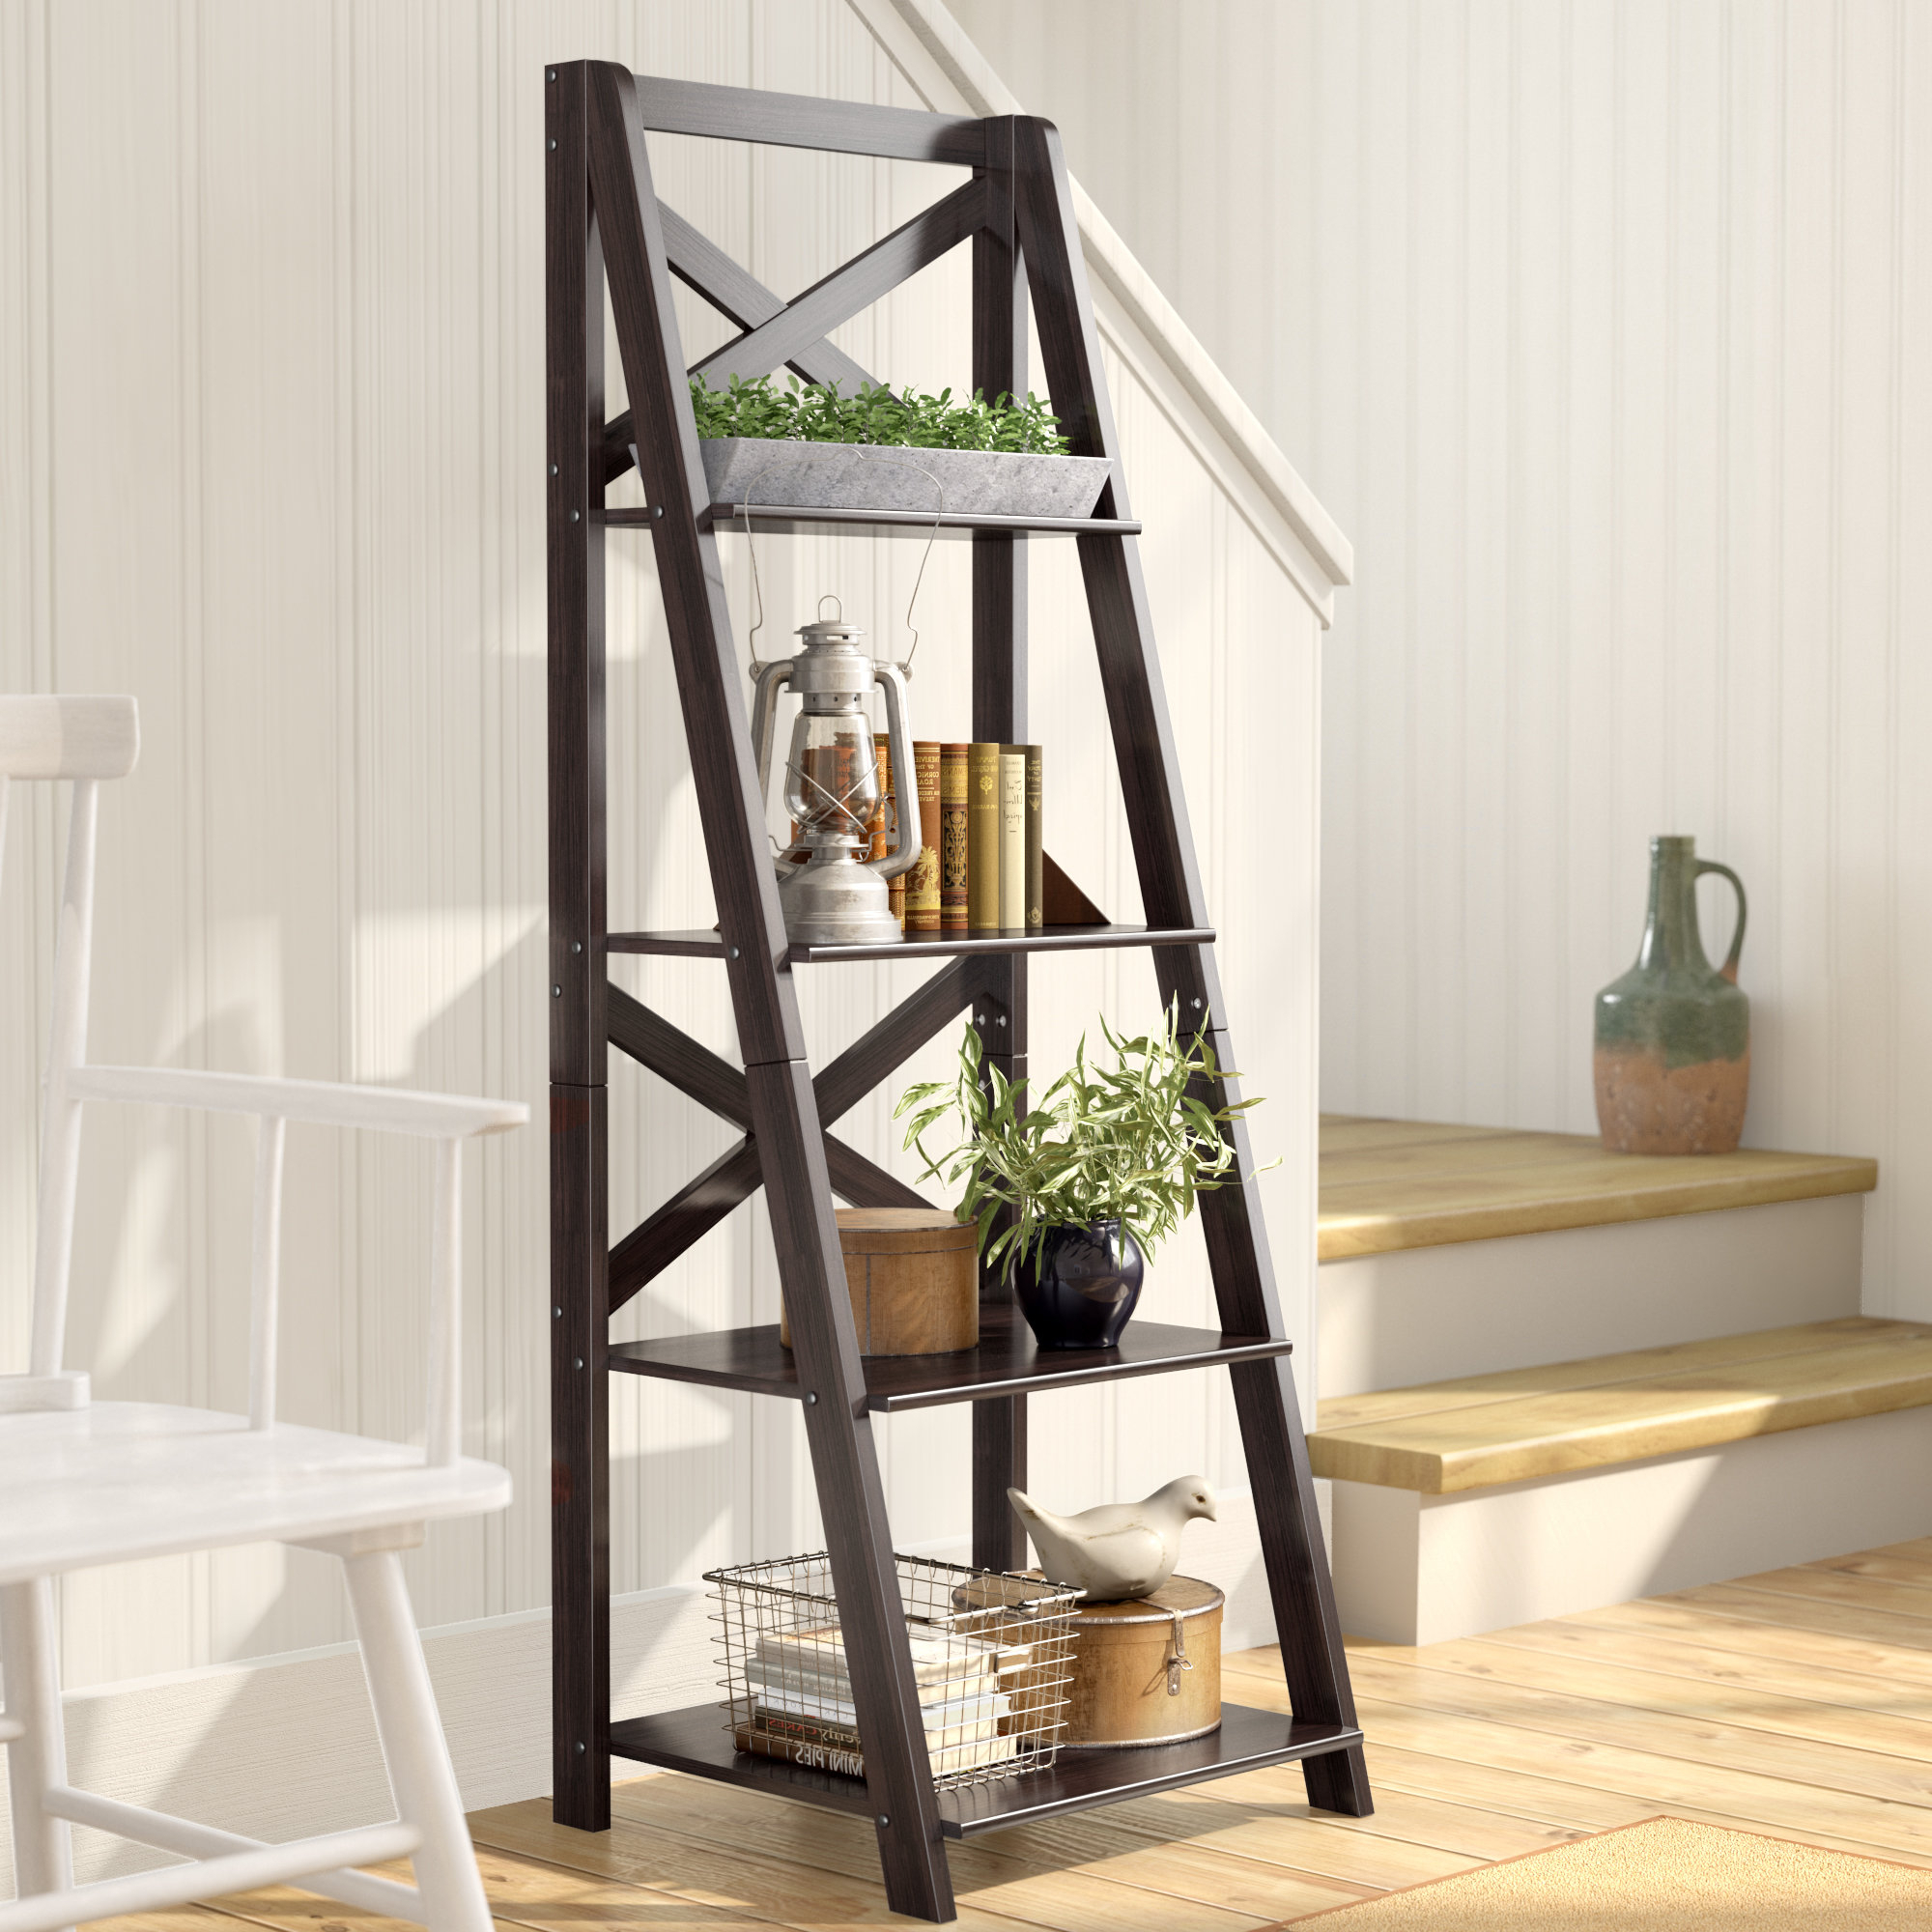 Cottage & Country Leaning Bookcases You'll Love In 2019 In Best And Newest Noelle Ashlynn Ladder Bookcases (View 6 of 20)